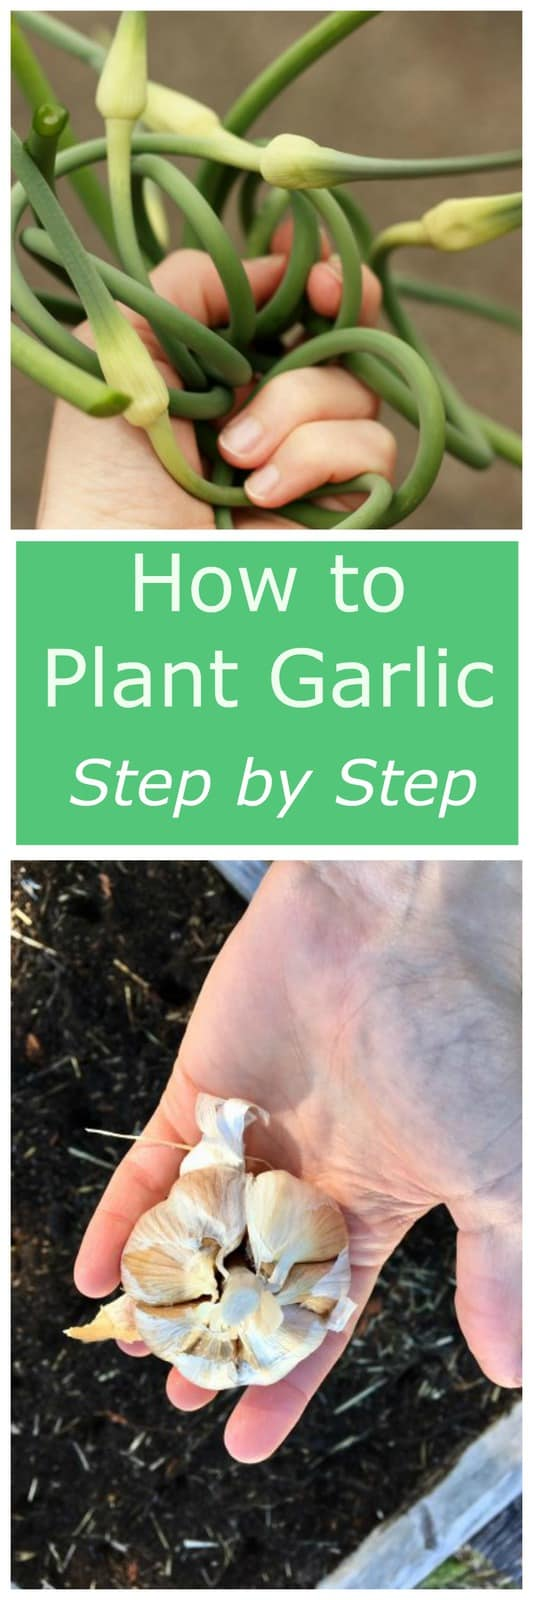 How to Plant Garlic - learn to plant the easiest garden crop ever! Growing garlic is so simple, even the newest gardener can master it.